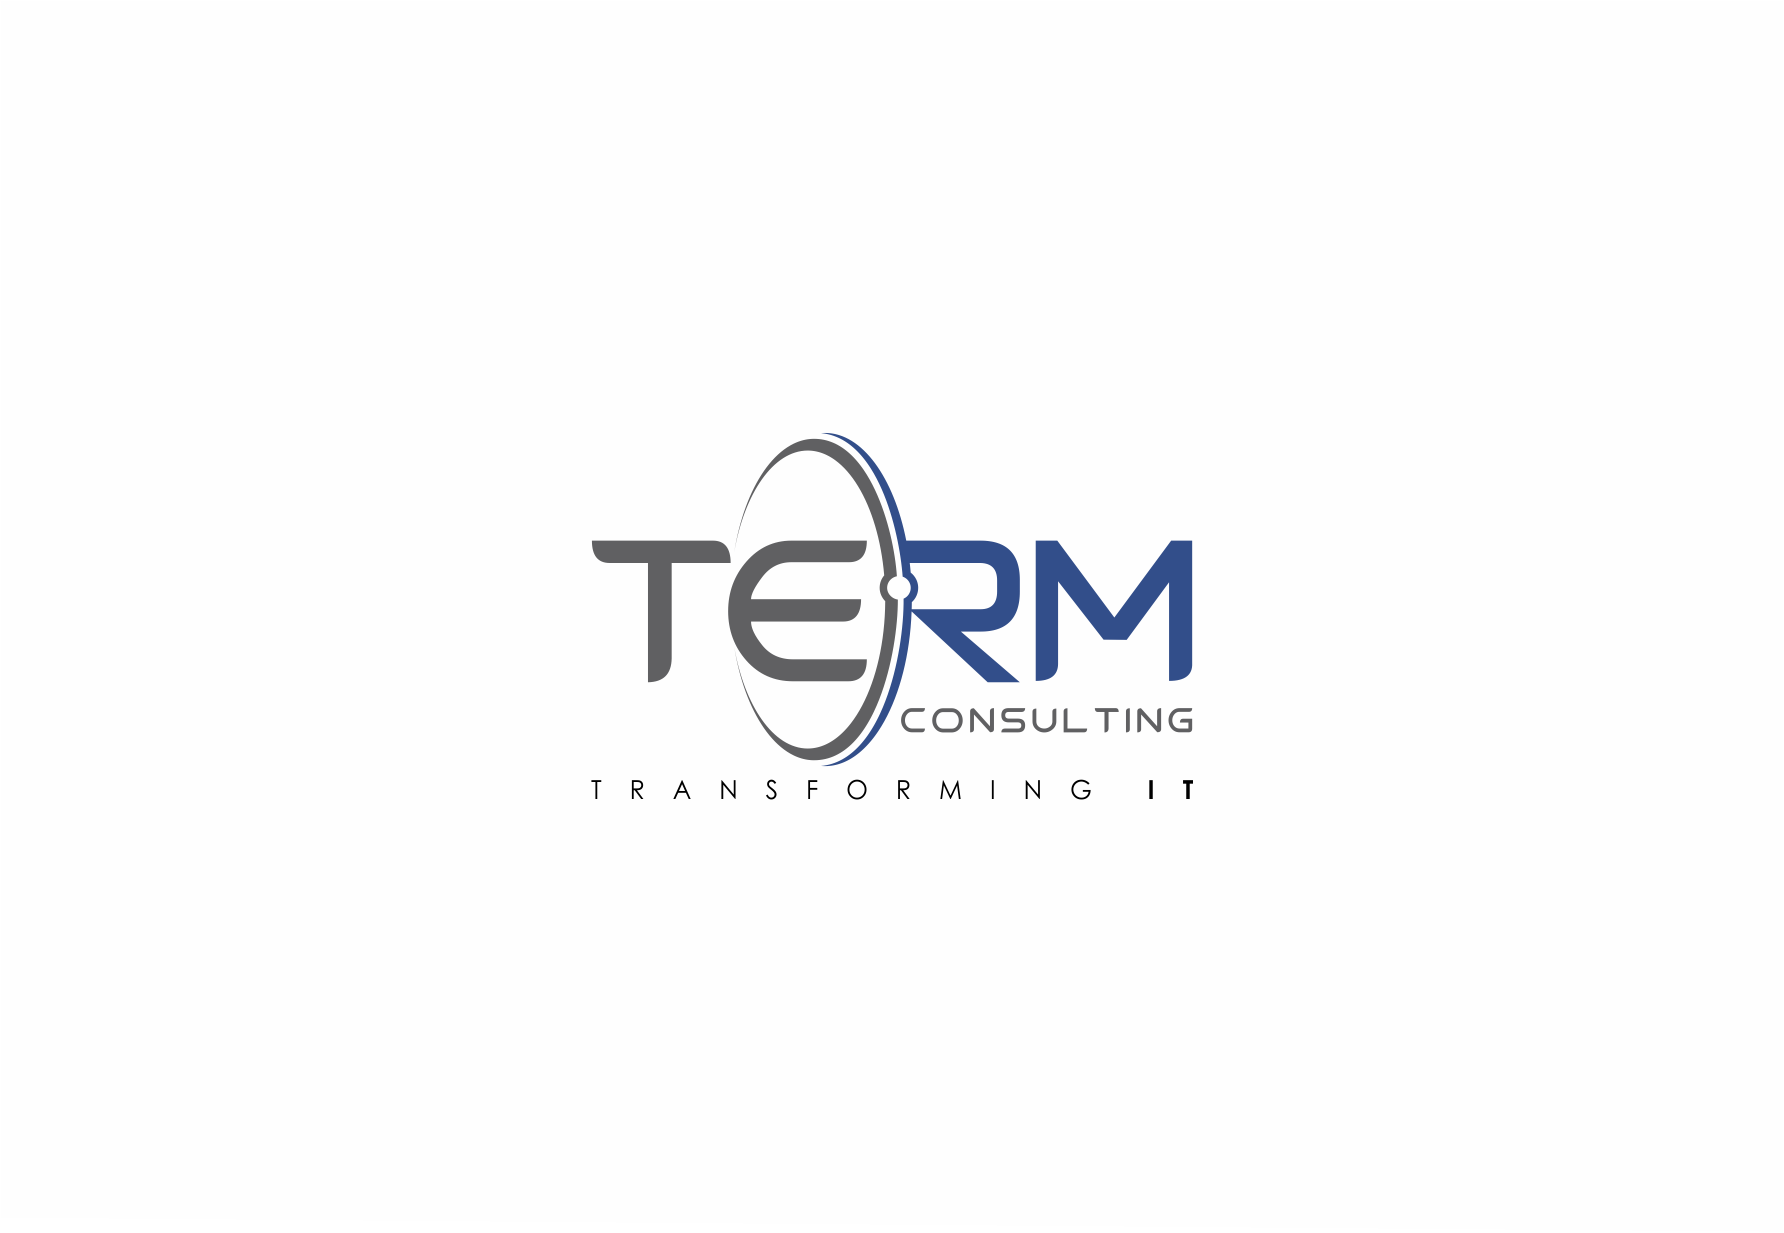 Help TERM Consulting with a new logo